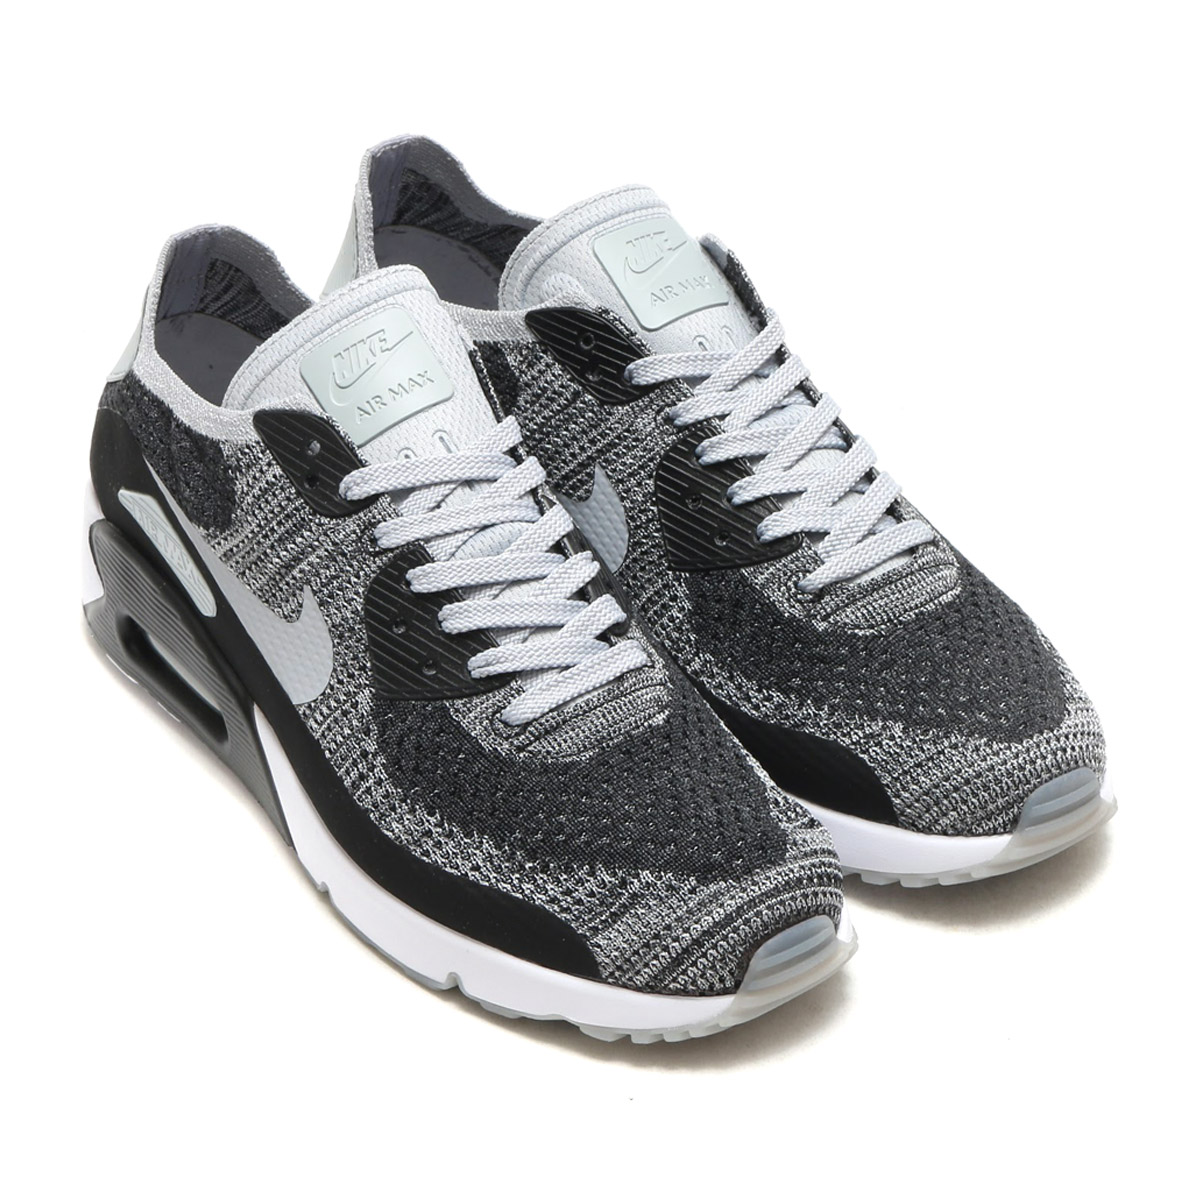 best website 557d5 810b7 It renovates a design and expresses the hommage to Air Max icon. Is  distinguished for the form mid sole which adopt lightness and Flyknit upper  superior in ...